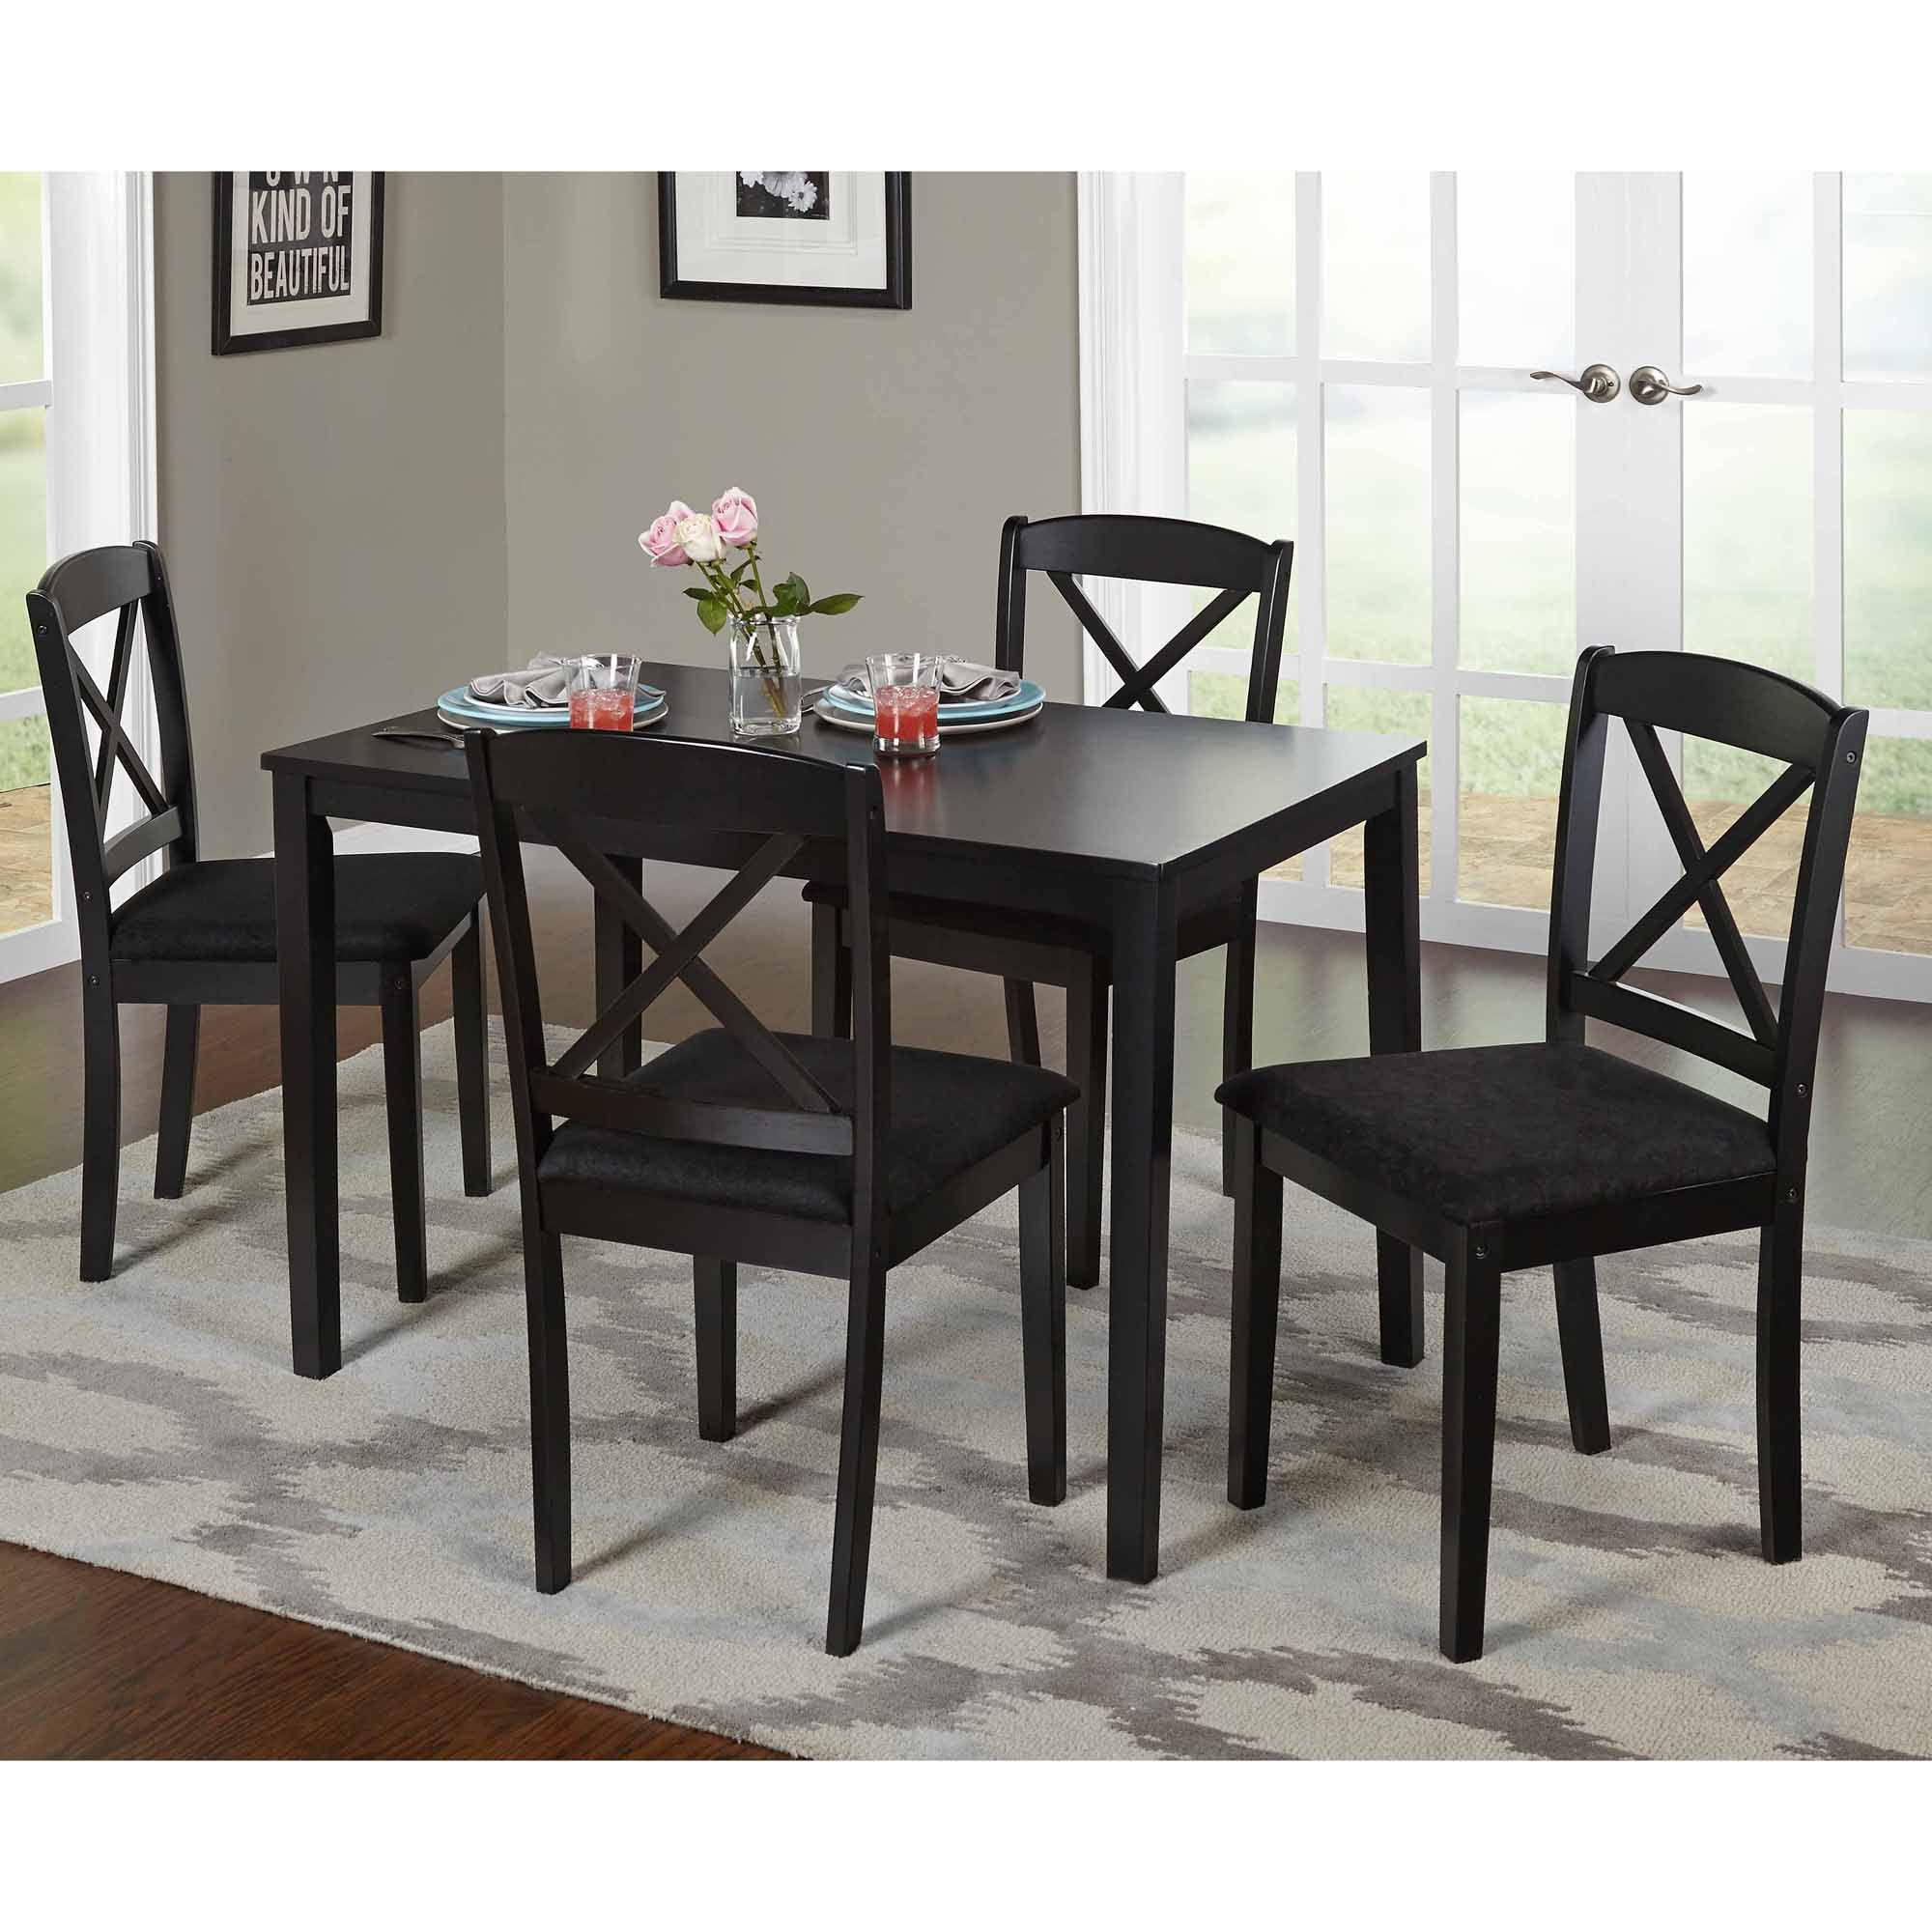 Mainstays 5 Piece Dining Set Walmart Com Kitchen Table